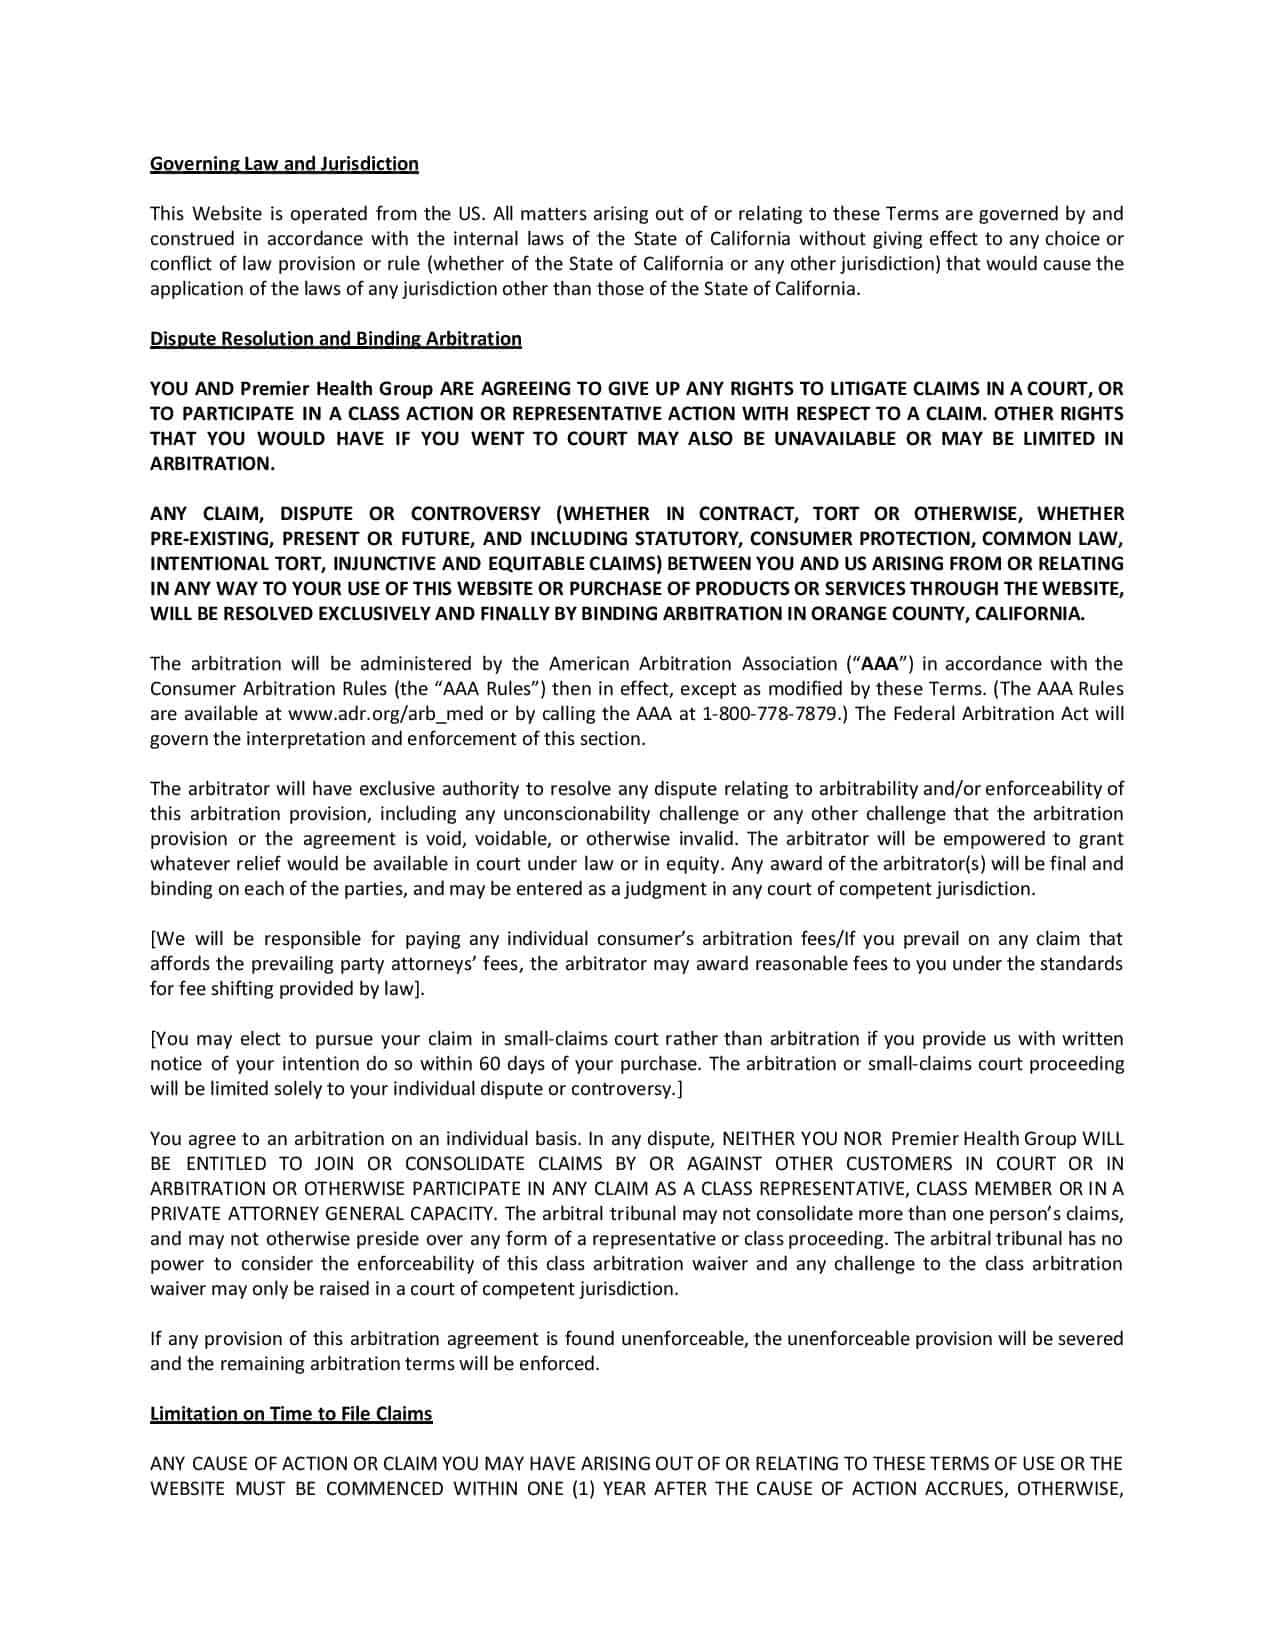 valleyhouserehabilitationcenter Terms of Use-page-006